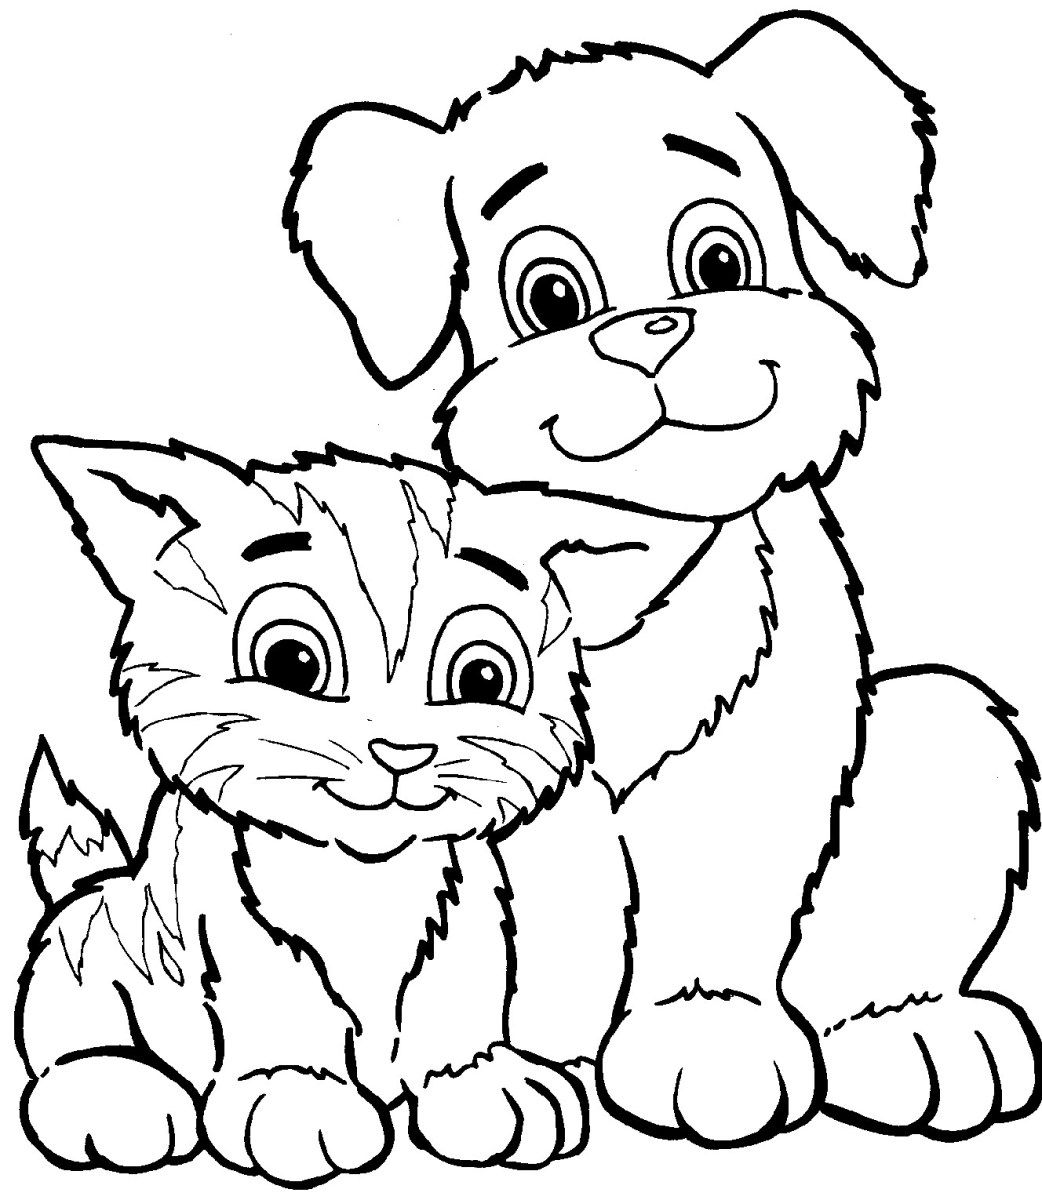 Dog And Cat Coloring Pages Simple Coloring Pages Of Dogs Dog Coloring Page Cat Coloring Page Animal Coloring Pages